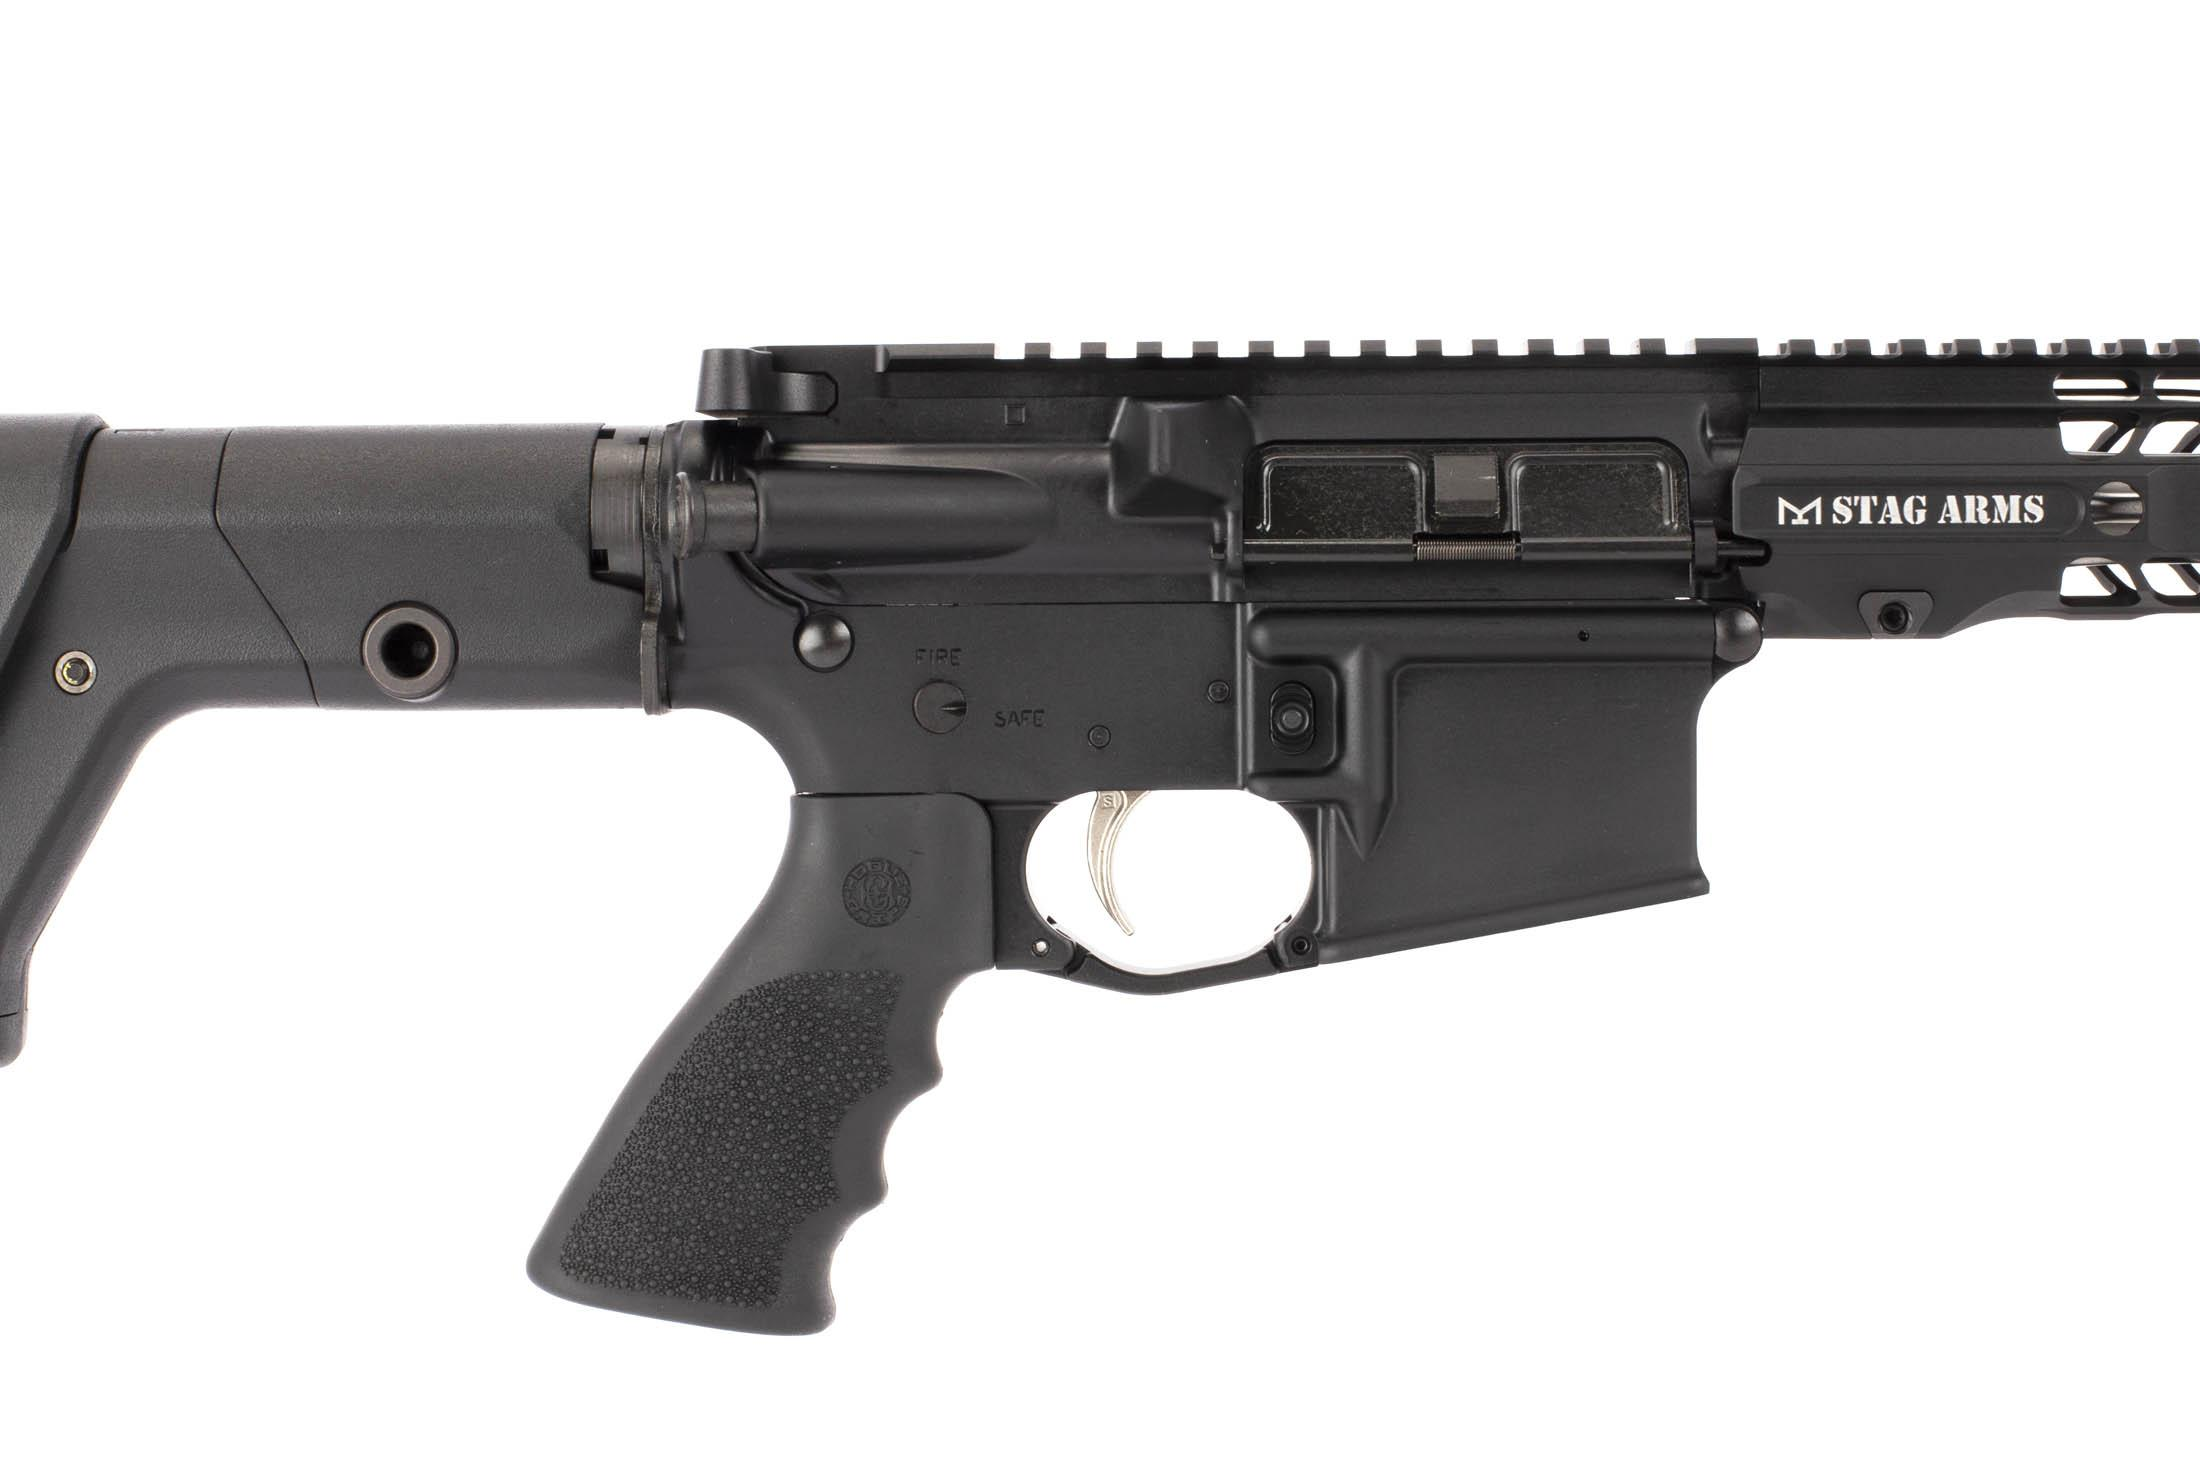 Stag Arms .224 Valkyrie AR-15 features a Hogue pistol grip and Nickel Boron trigger.